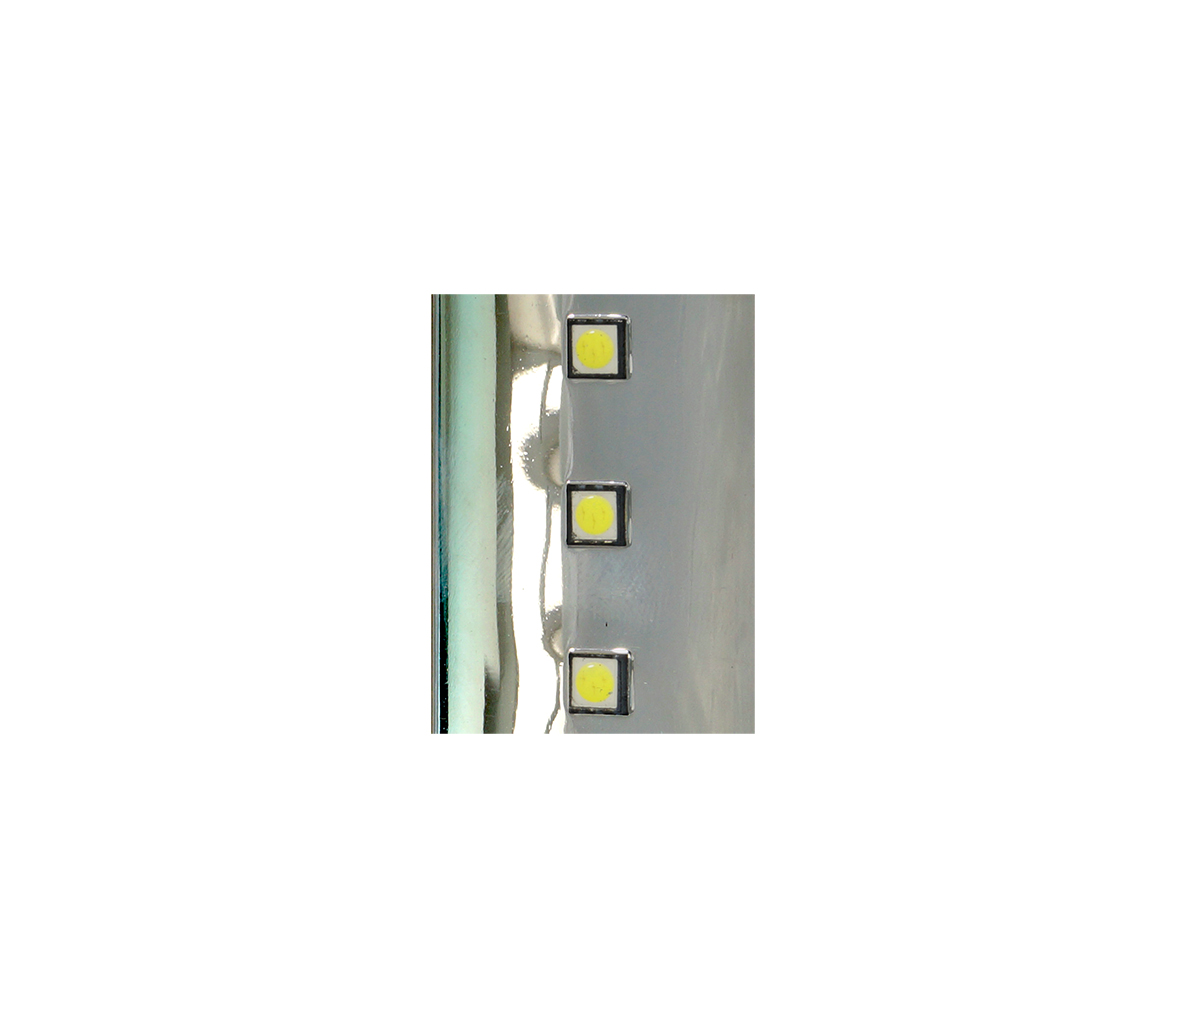 BES-24360 - Applique - beselettronica - APPLIQUE PARETE LED ...